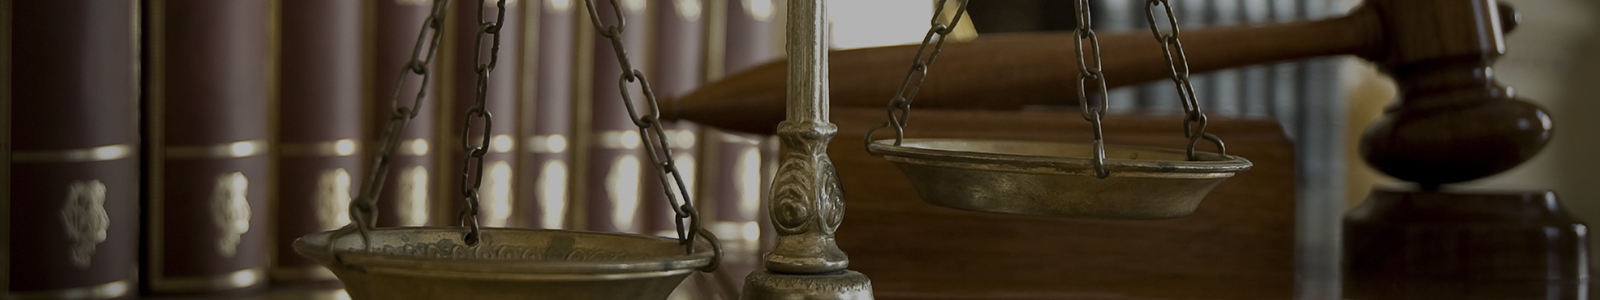 Special Master Magistrate Judge Bench with Gavel and Books